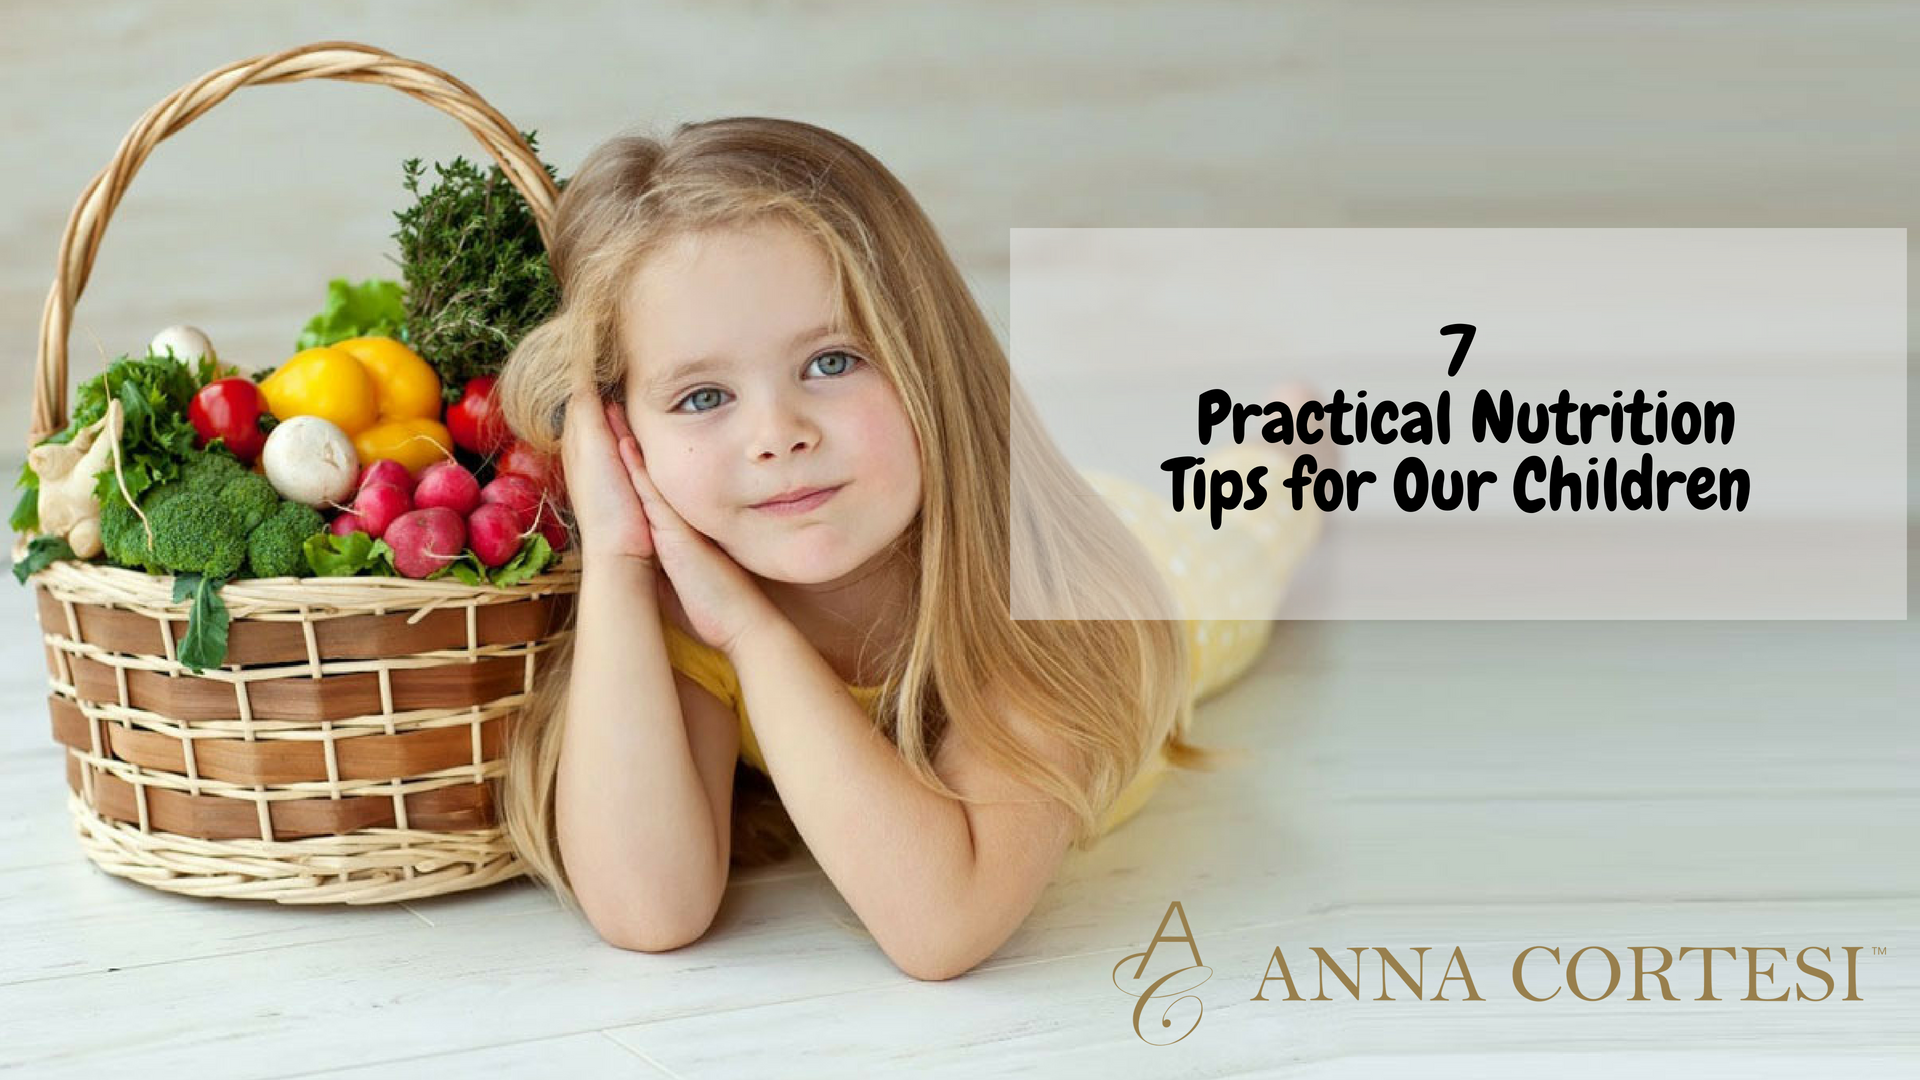 7 Practical Nutrition Tips for Our Children